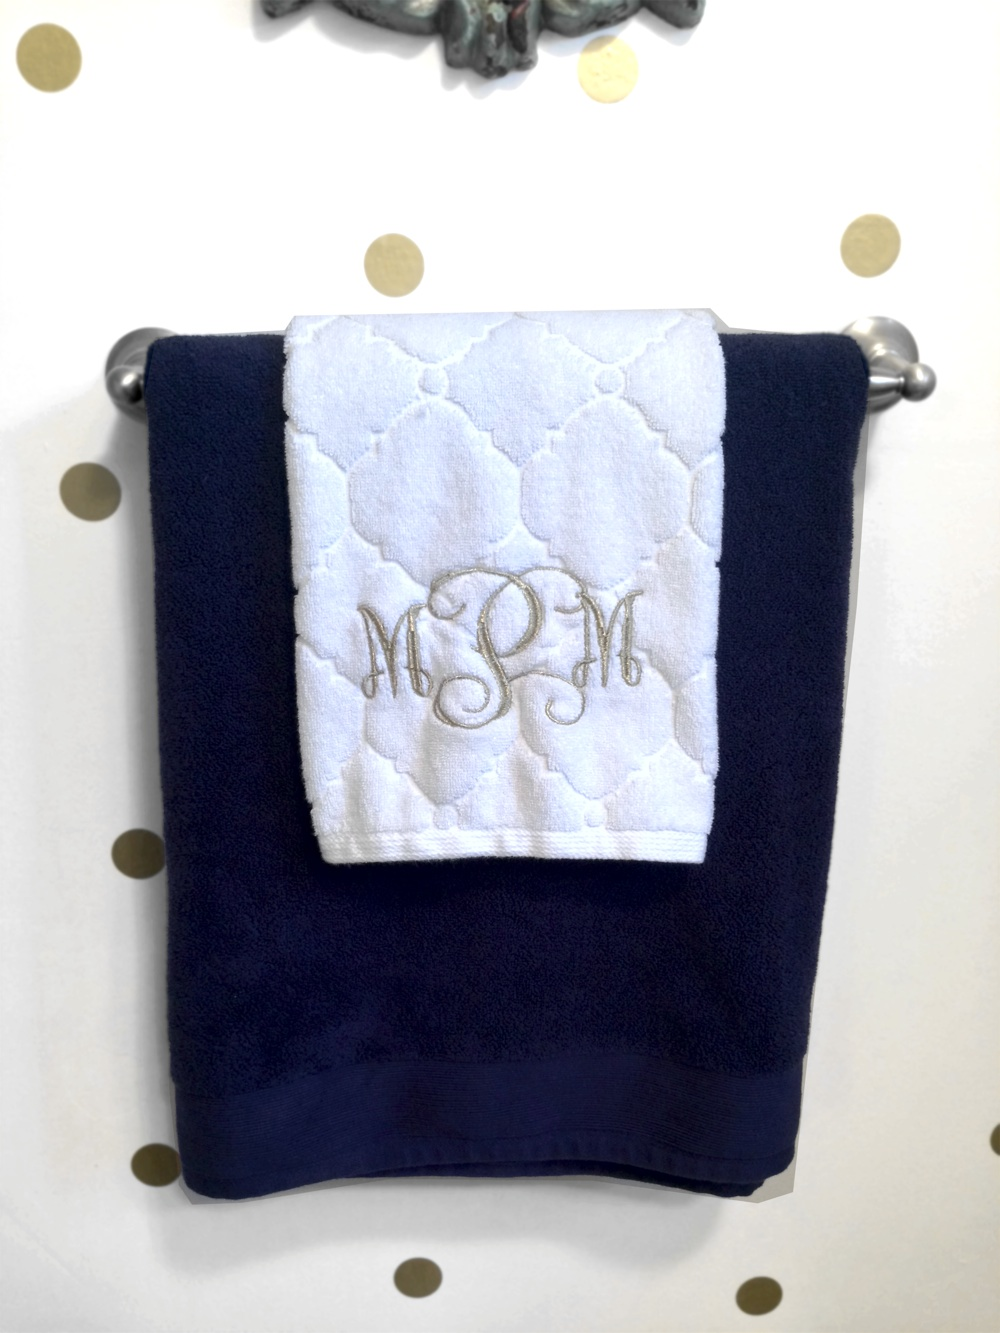 Embroidered white and navy towels with gold metallic thread.